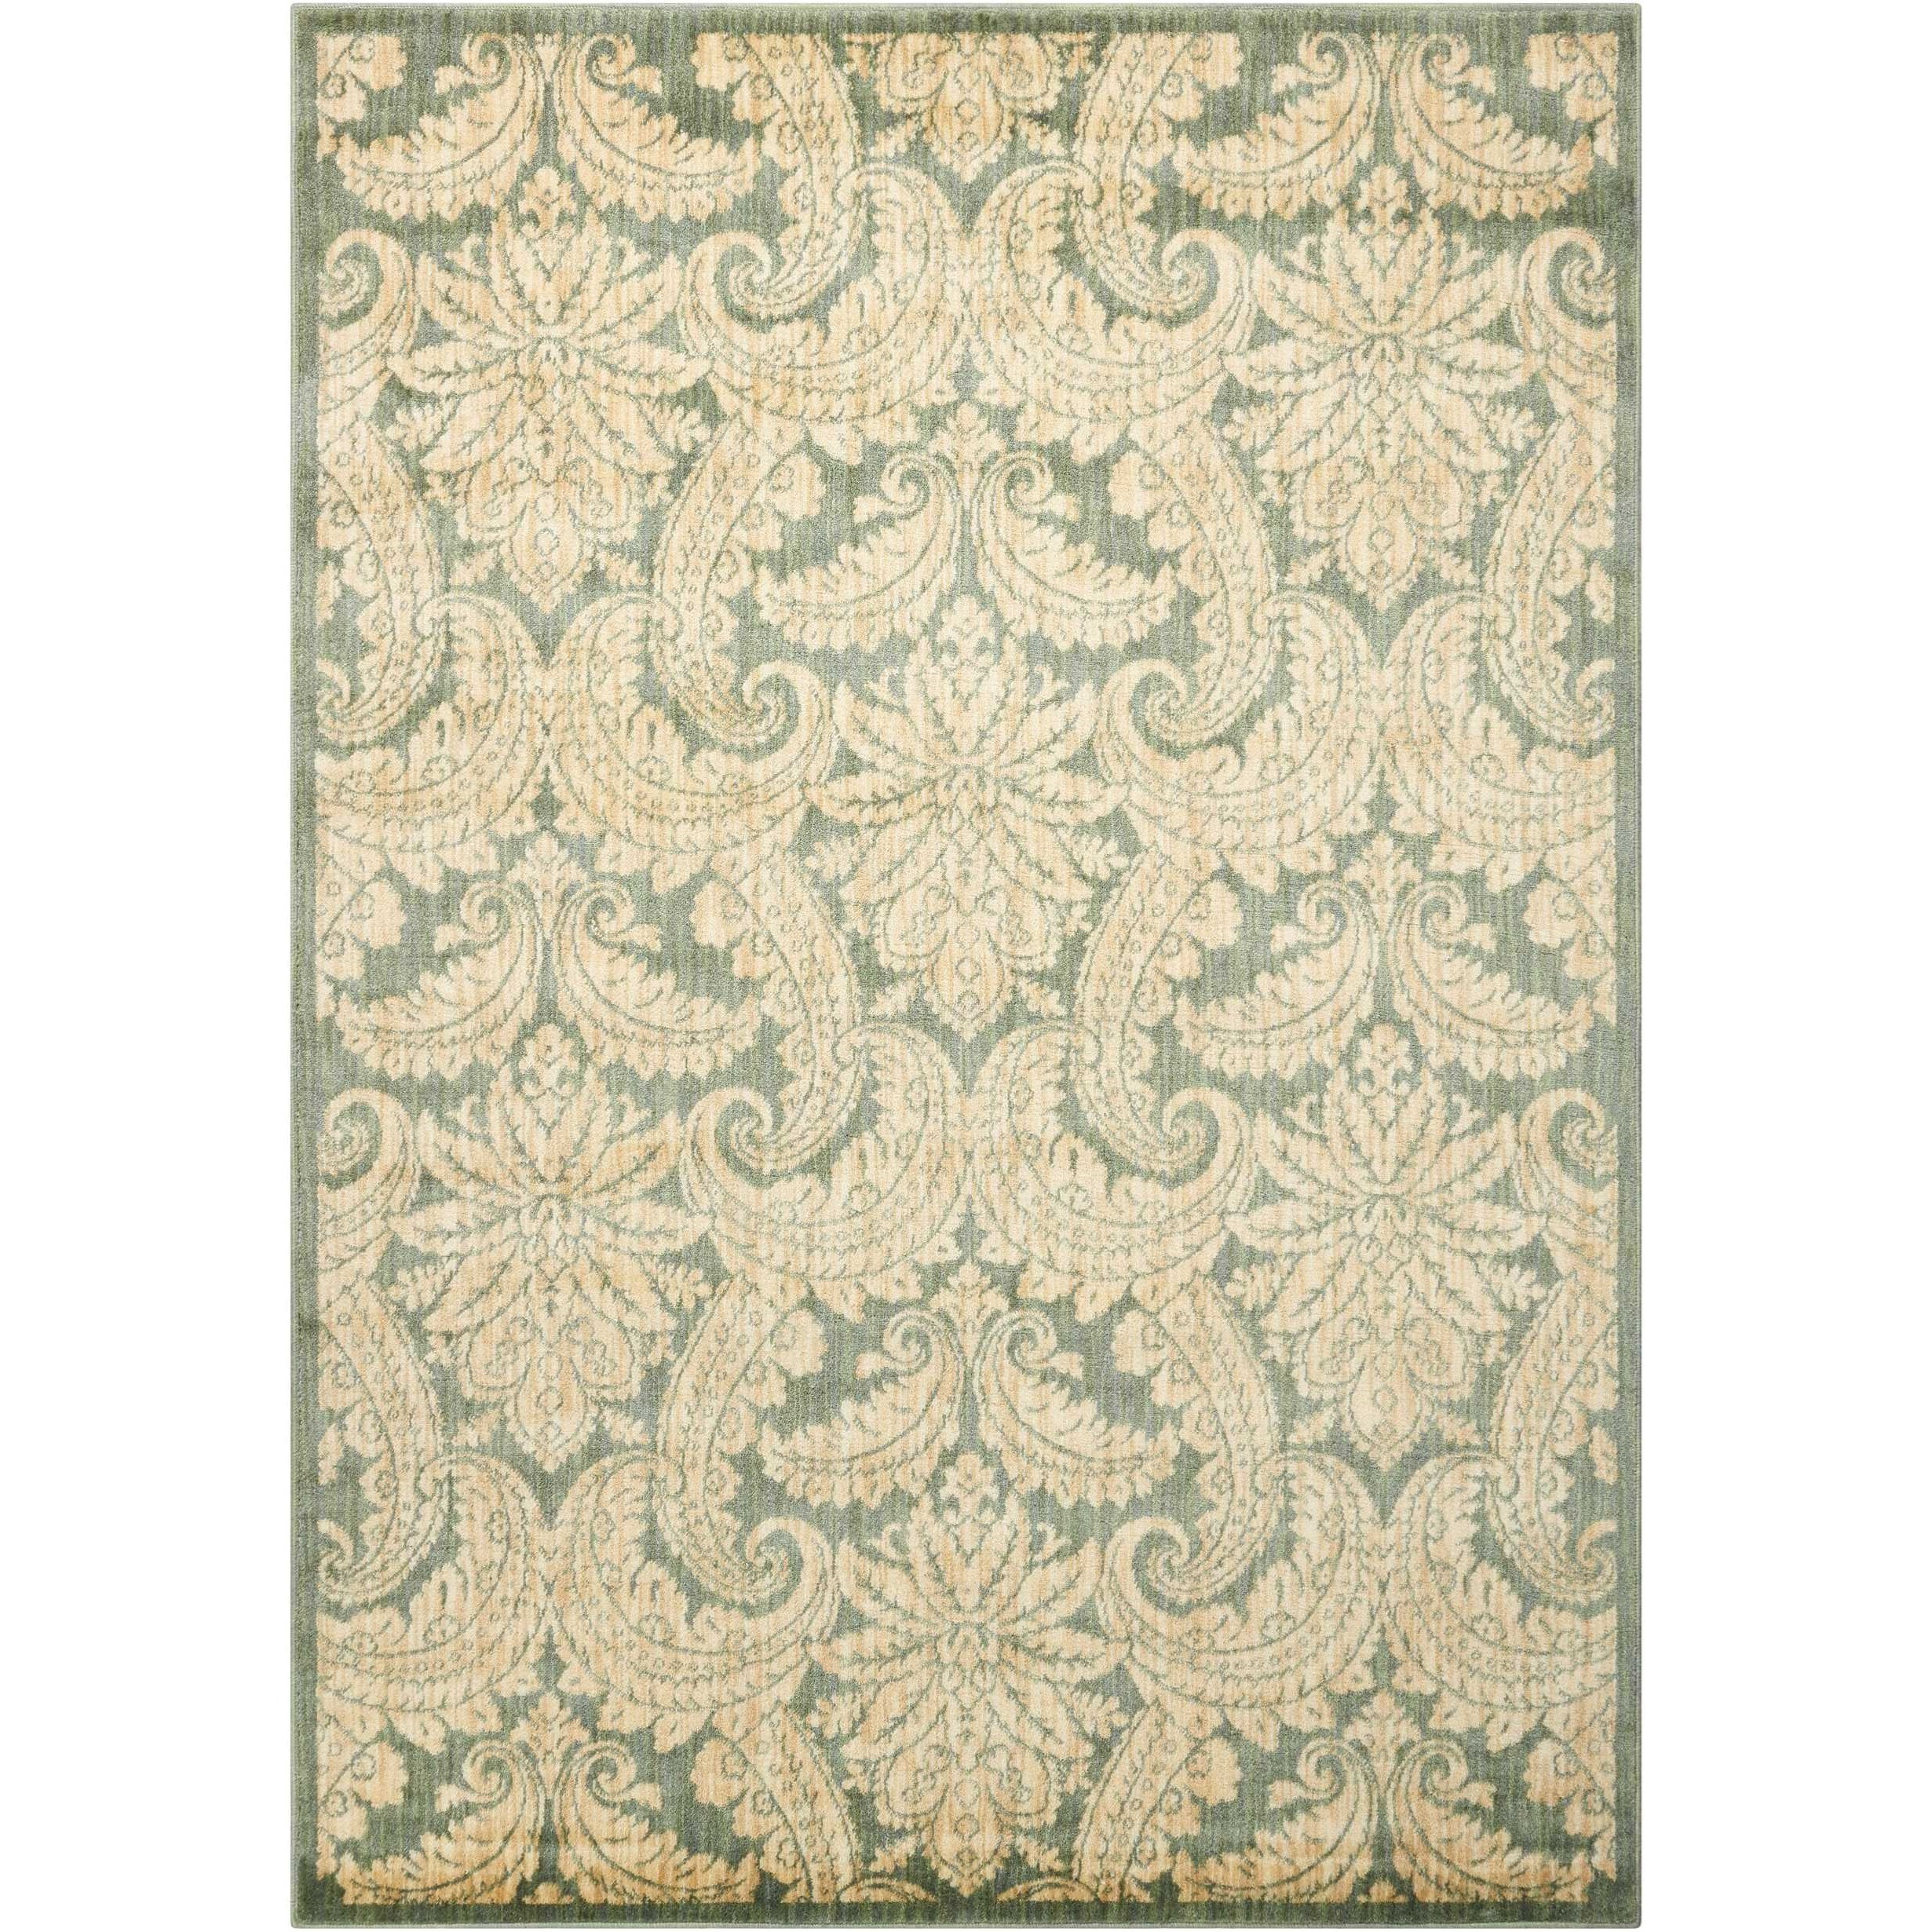 "Aristo 9'3"" x 12'9"" Blue/Ivory Rectangle Rug by Nourison at Sprintz Furniture"